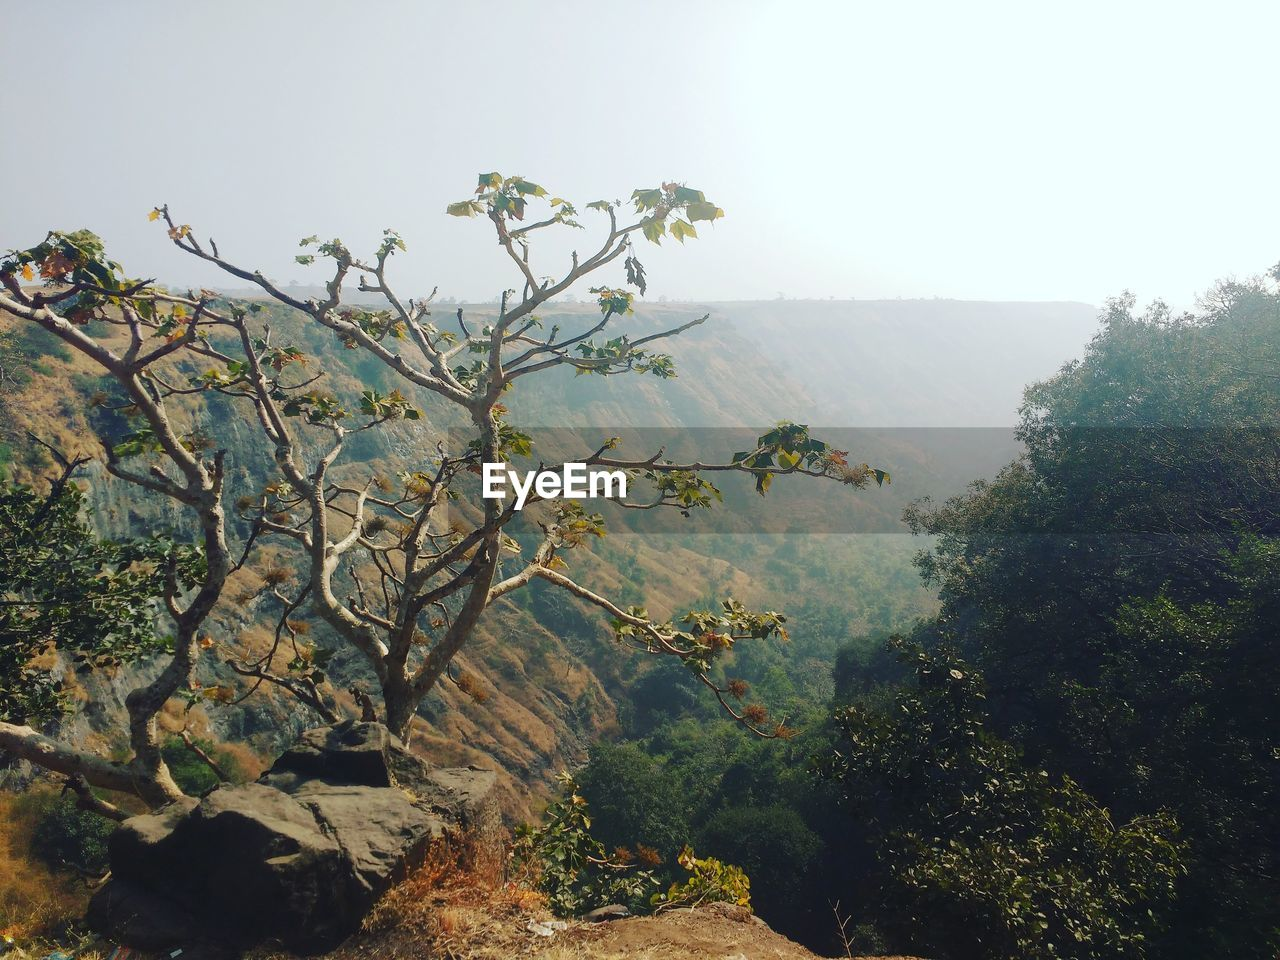 tree, growth, nature, mountain, day, no people, beauty in nature, plant, tranquility, scenics, outdoors, landscape, clear sky, branch, sky, freshness